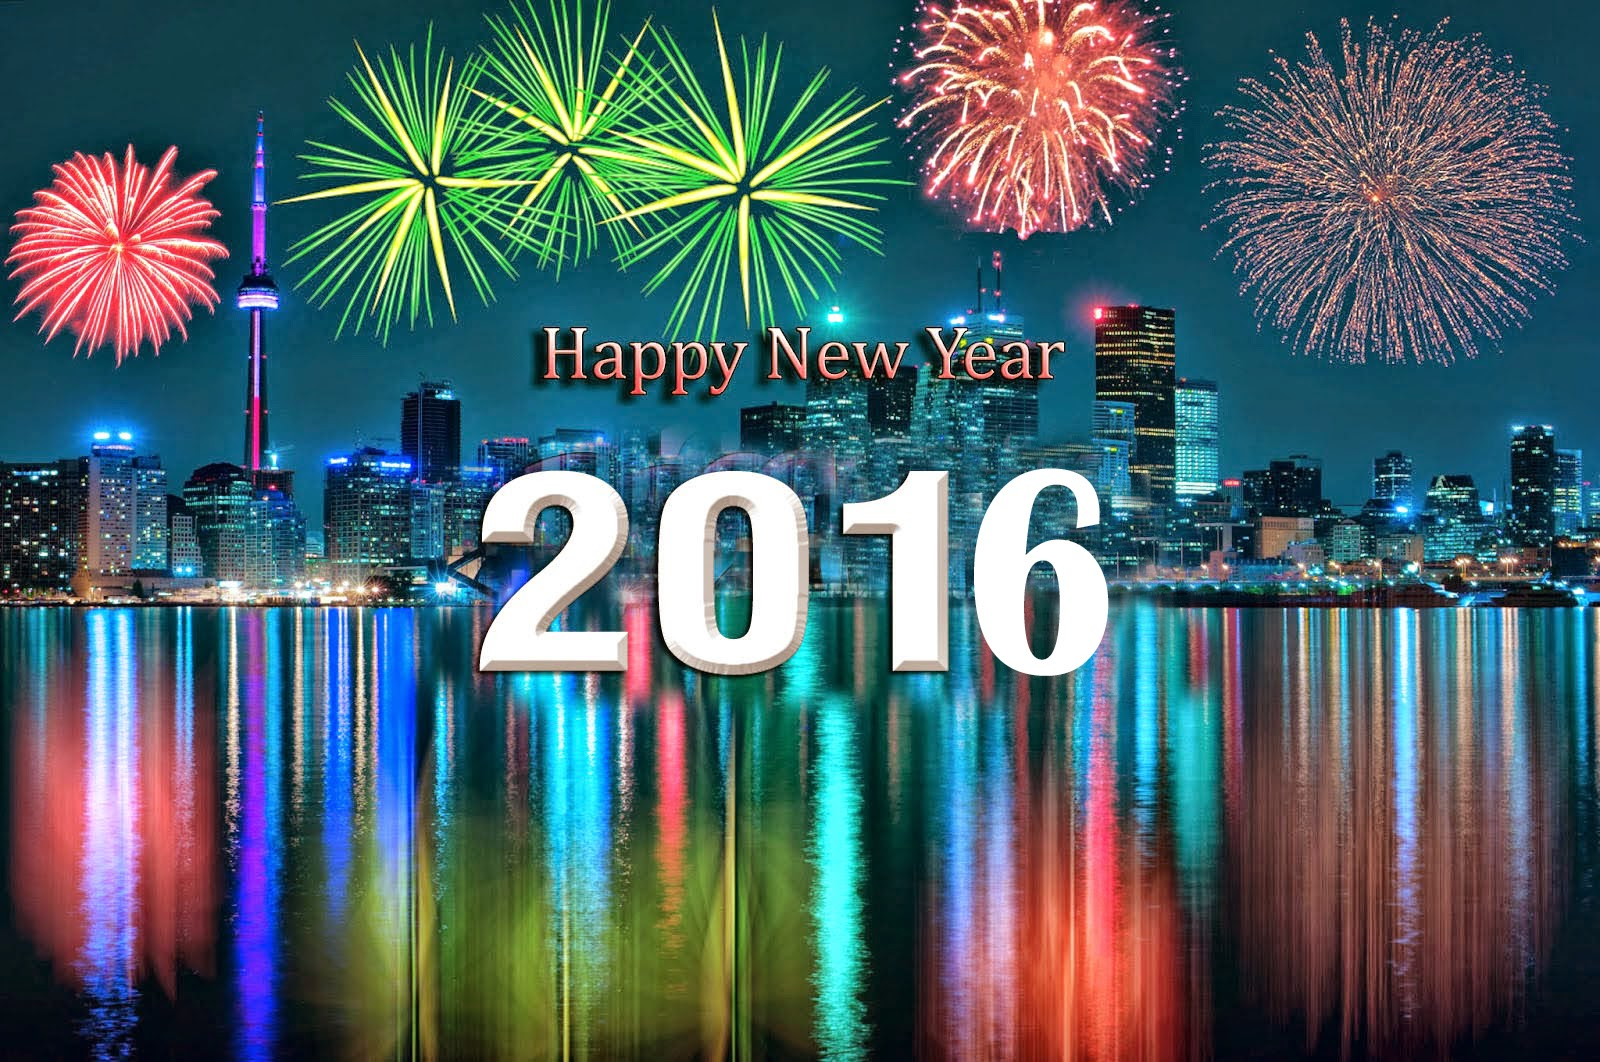 Download-Free-Happy-New-Year-2016-3D-